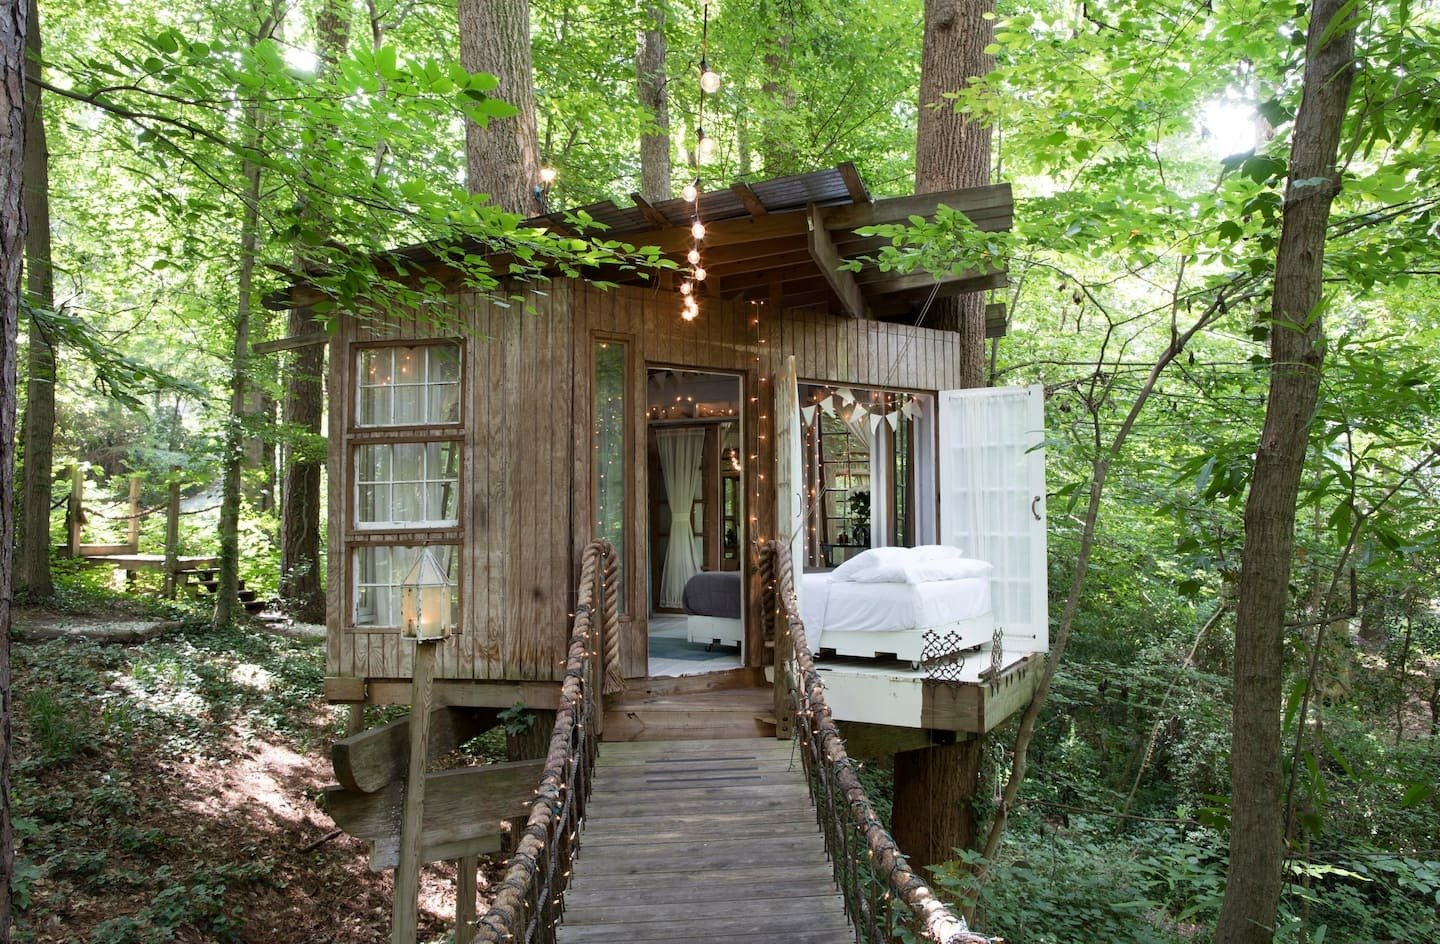 Photo 1 of 24 in Check Out These 23 Tiny Houses Perfect for an Autumn Getaway